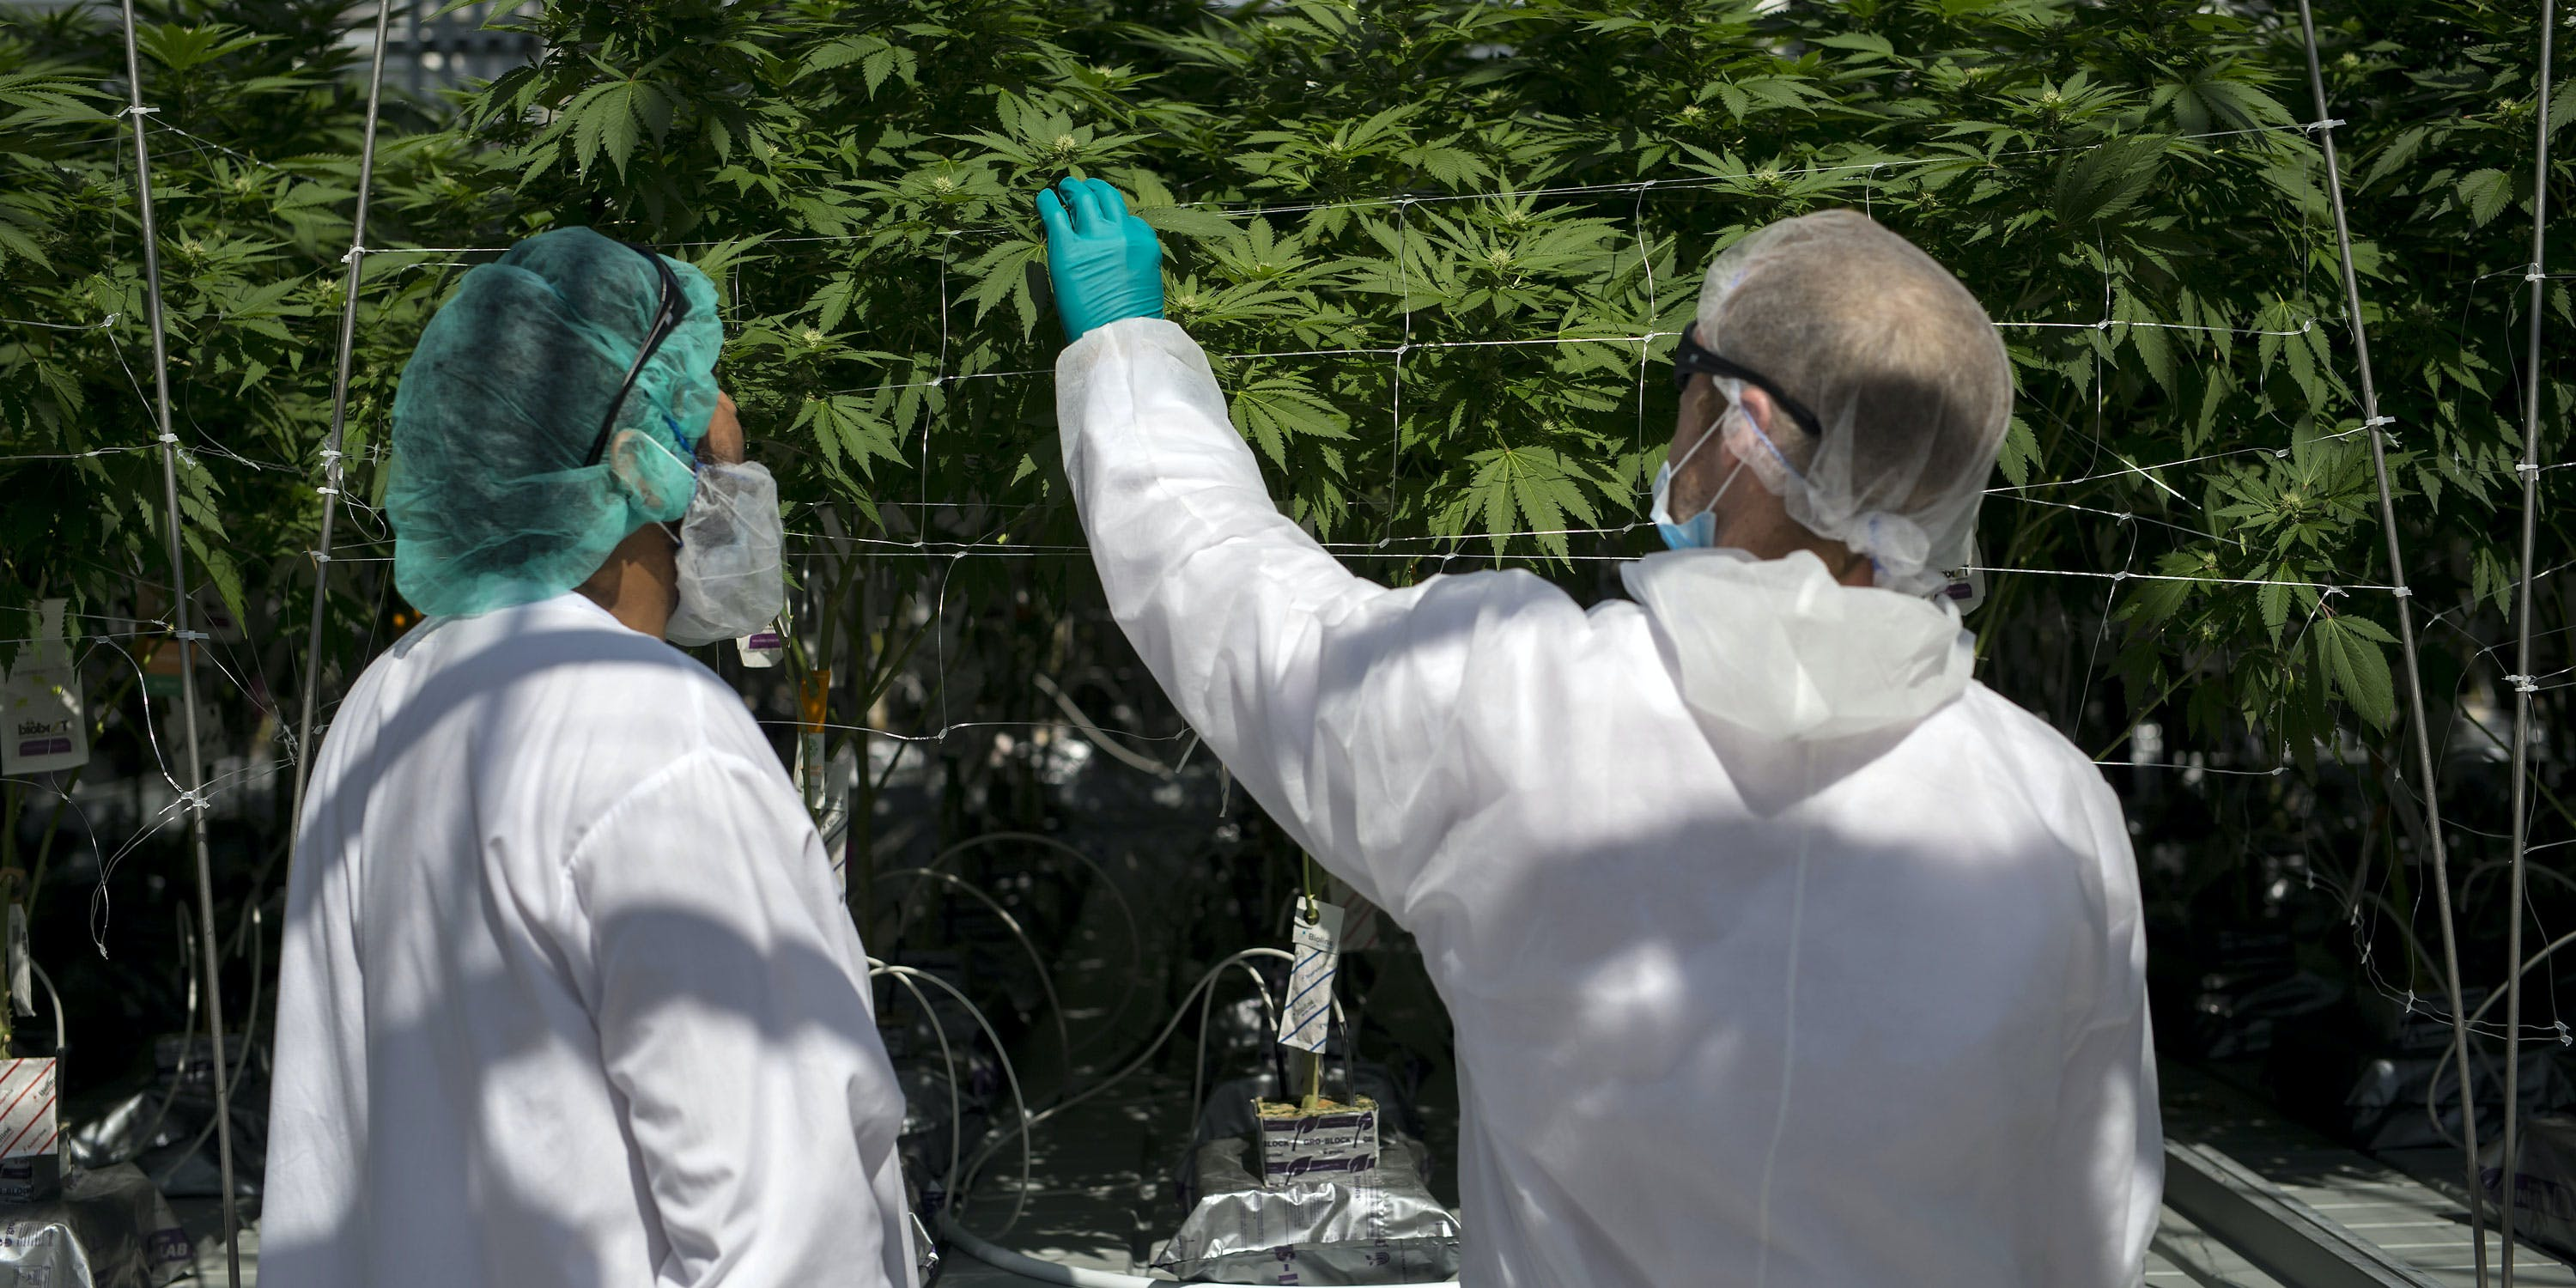 Employees inspect cannabis plants at a facility. In this article, Herb explores how Coca-Cola wants to get into the weed game with CBD infused drinks.